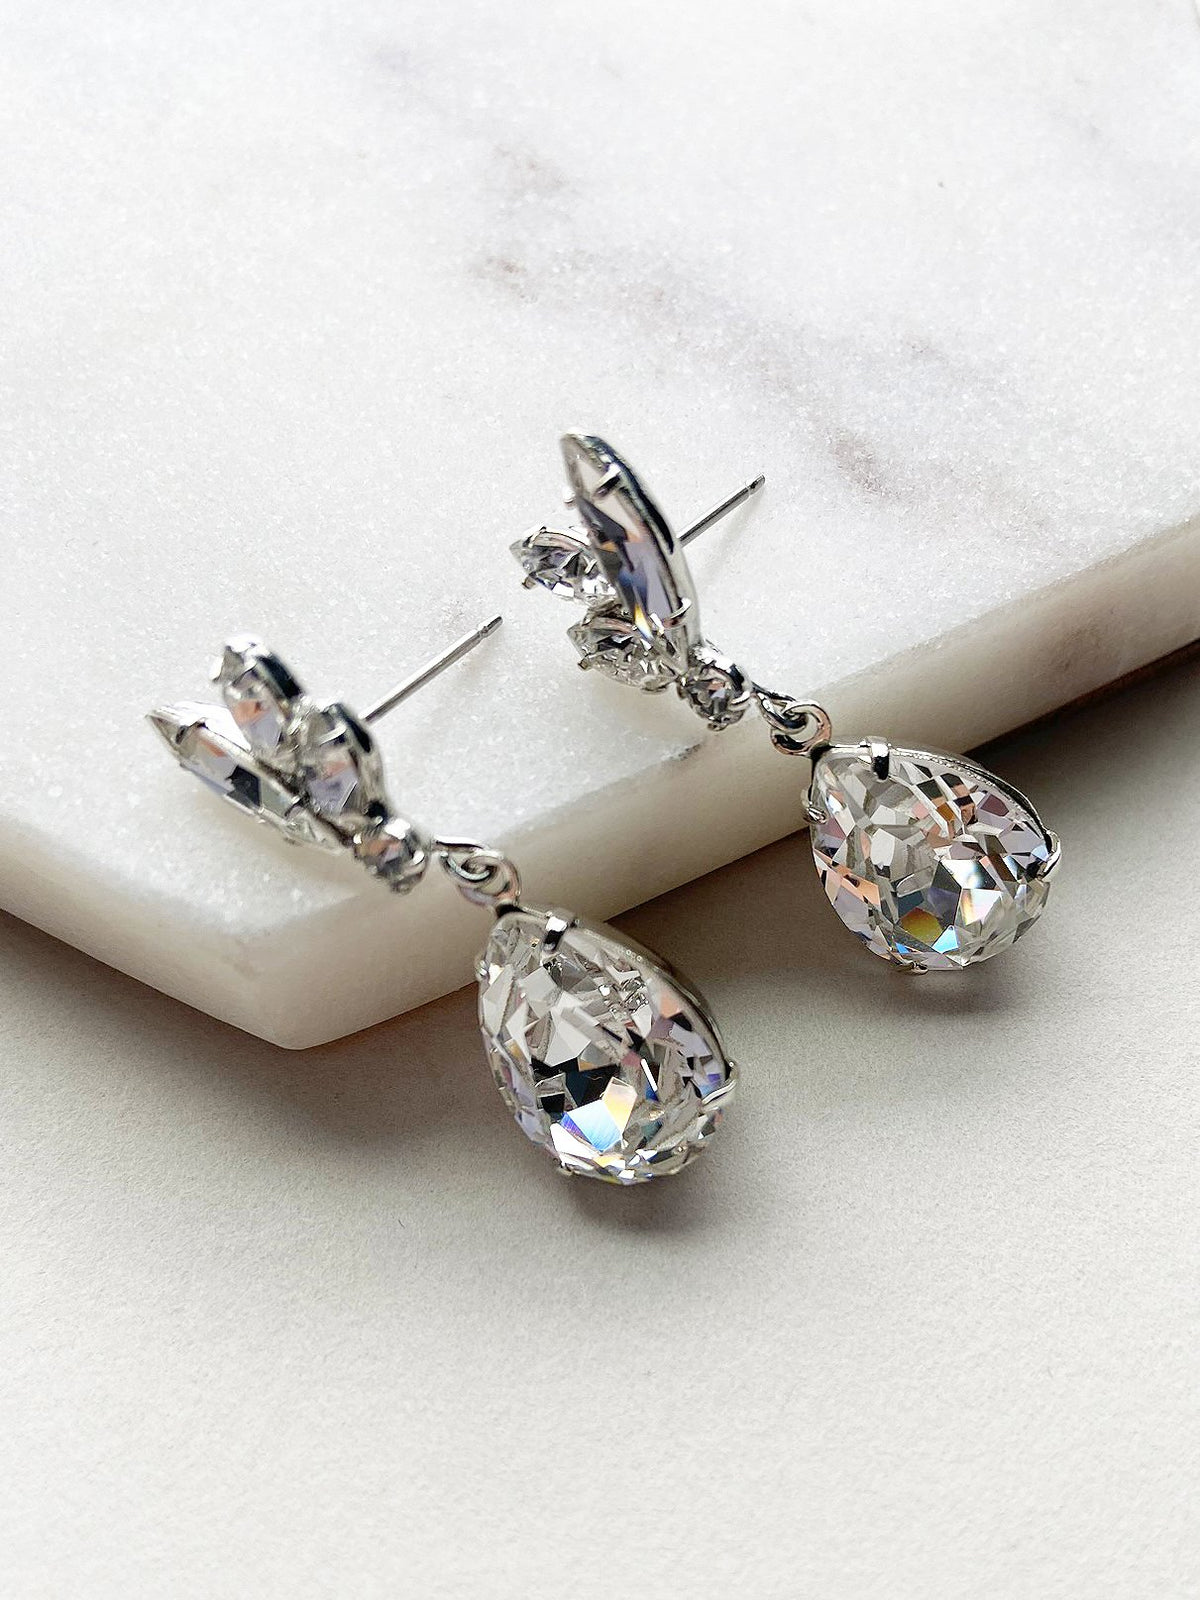 Rent Wedding Jewelry - Dainty Navette Earrings - Happily Ever Borrowed